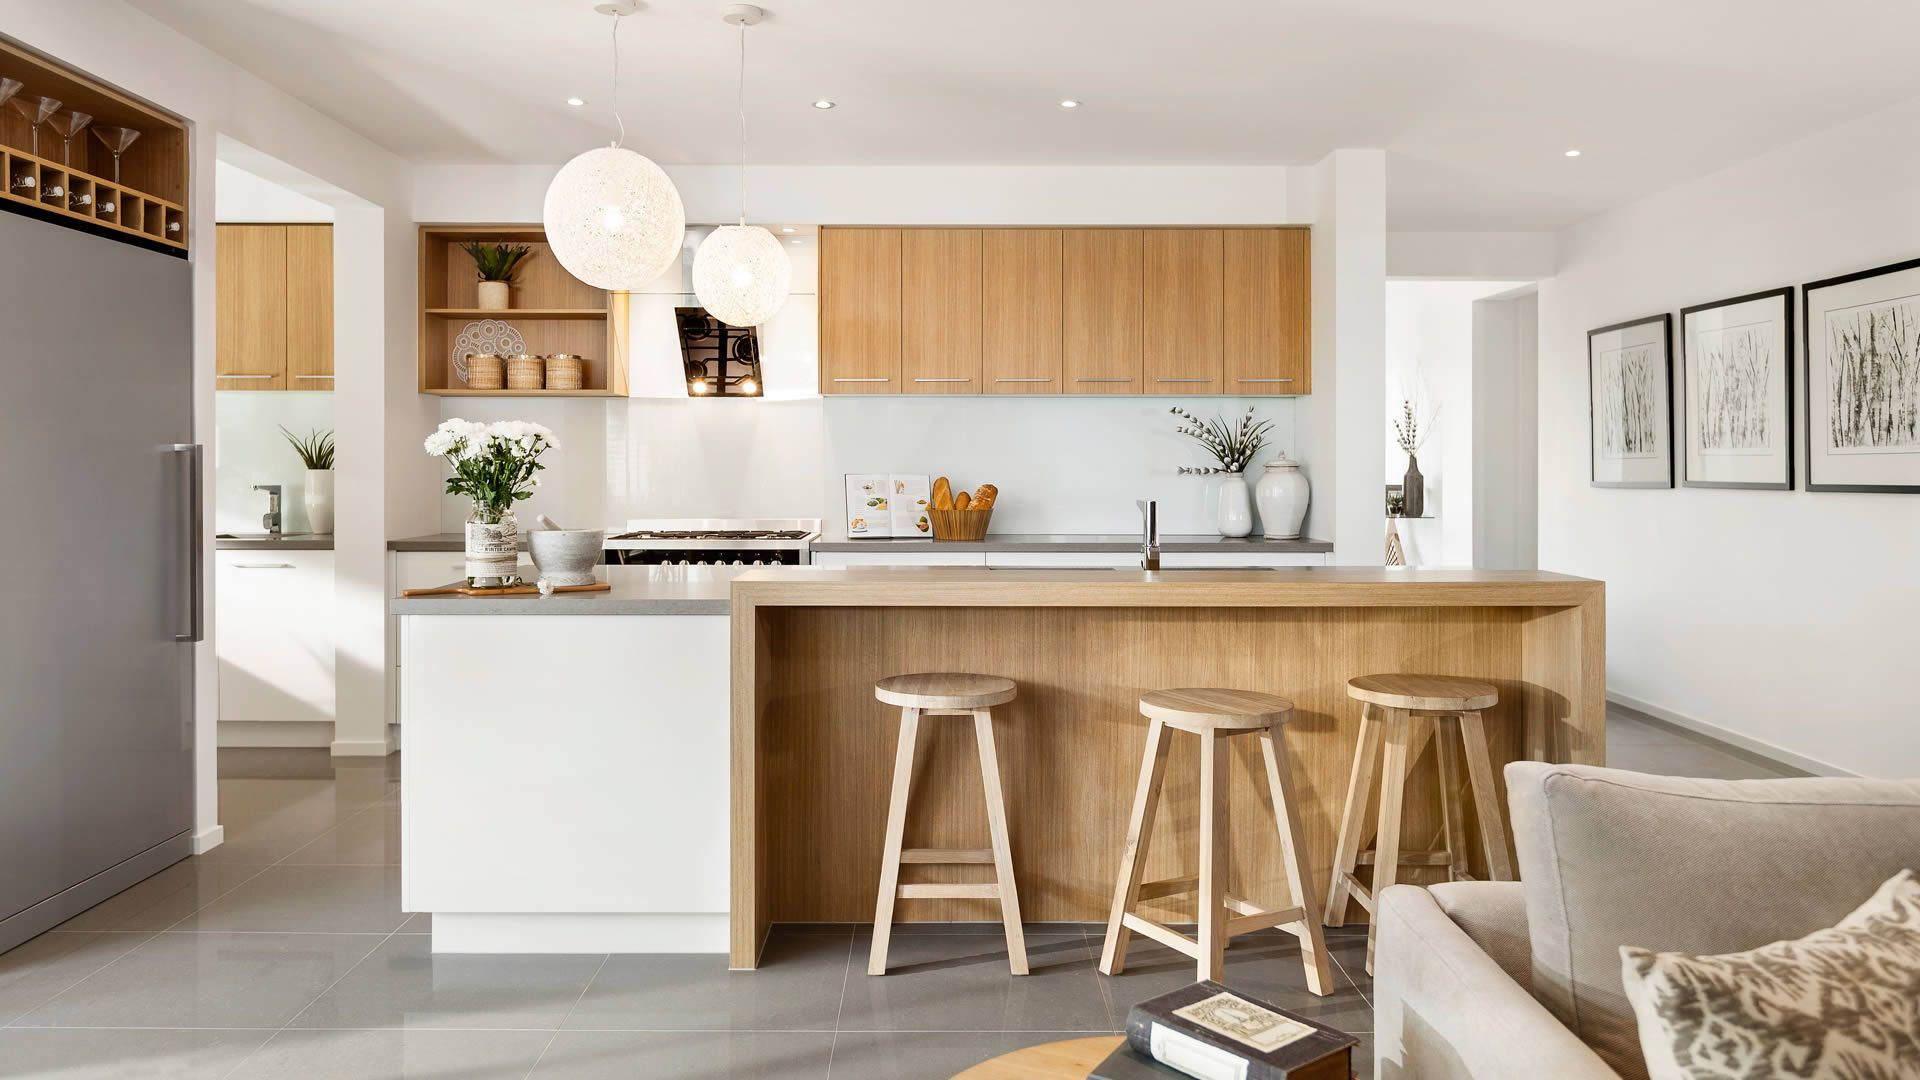 Indiana kitchen Modern white and timber kitchen with